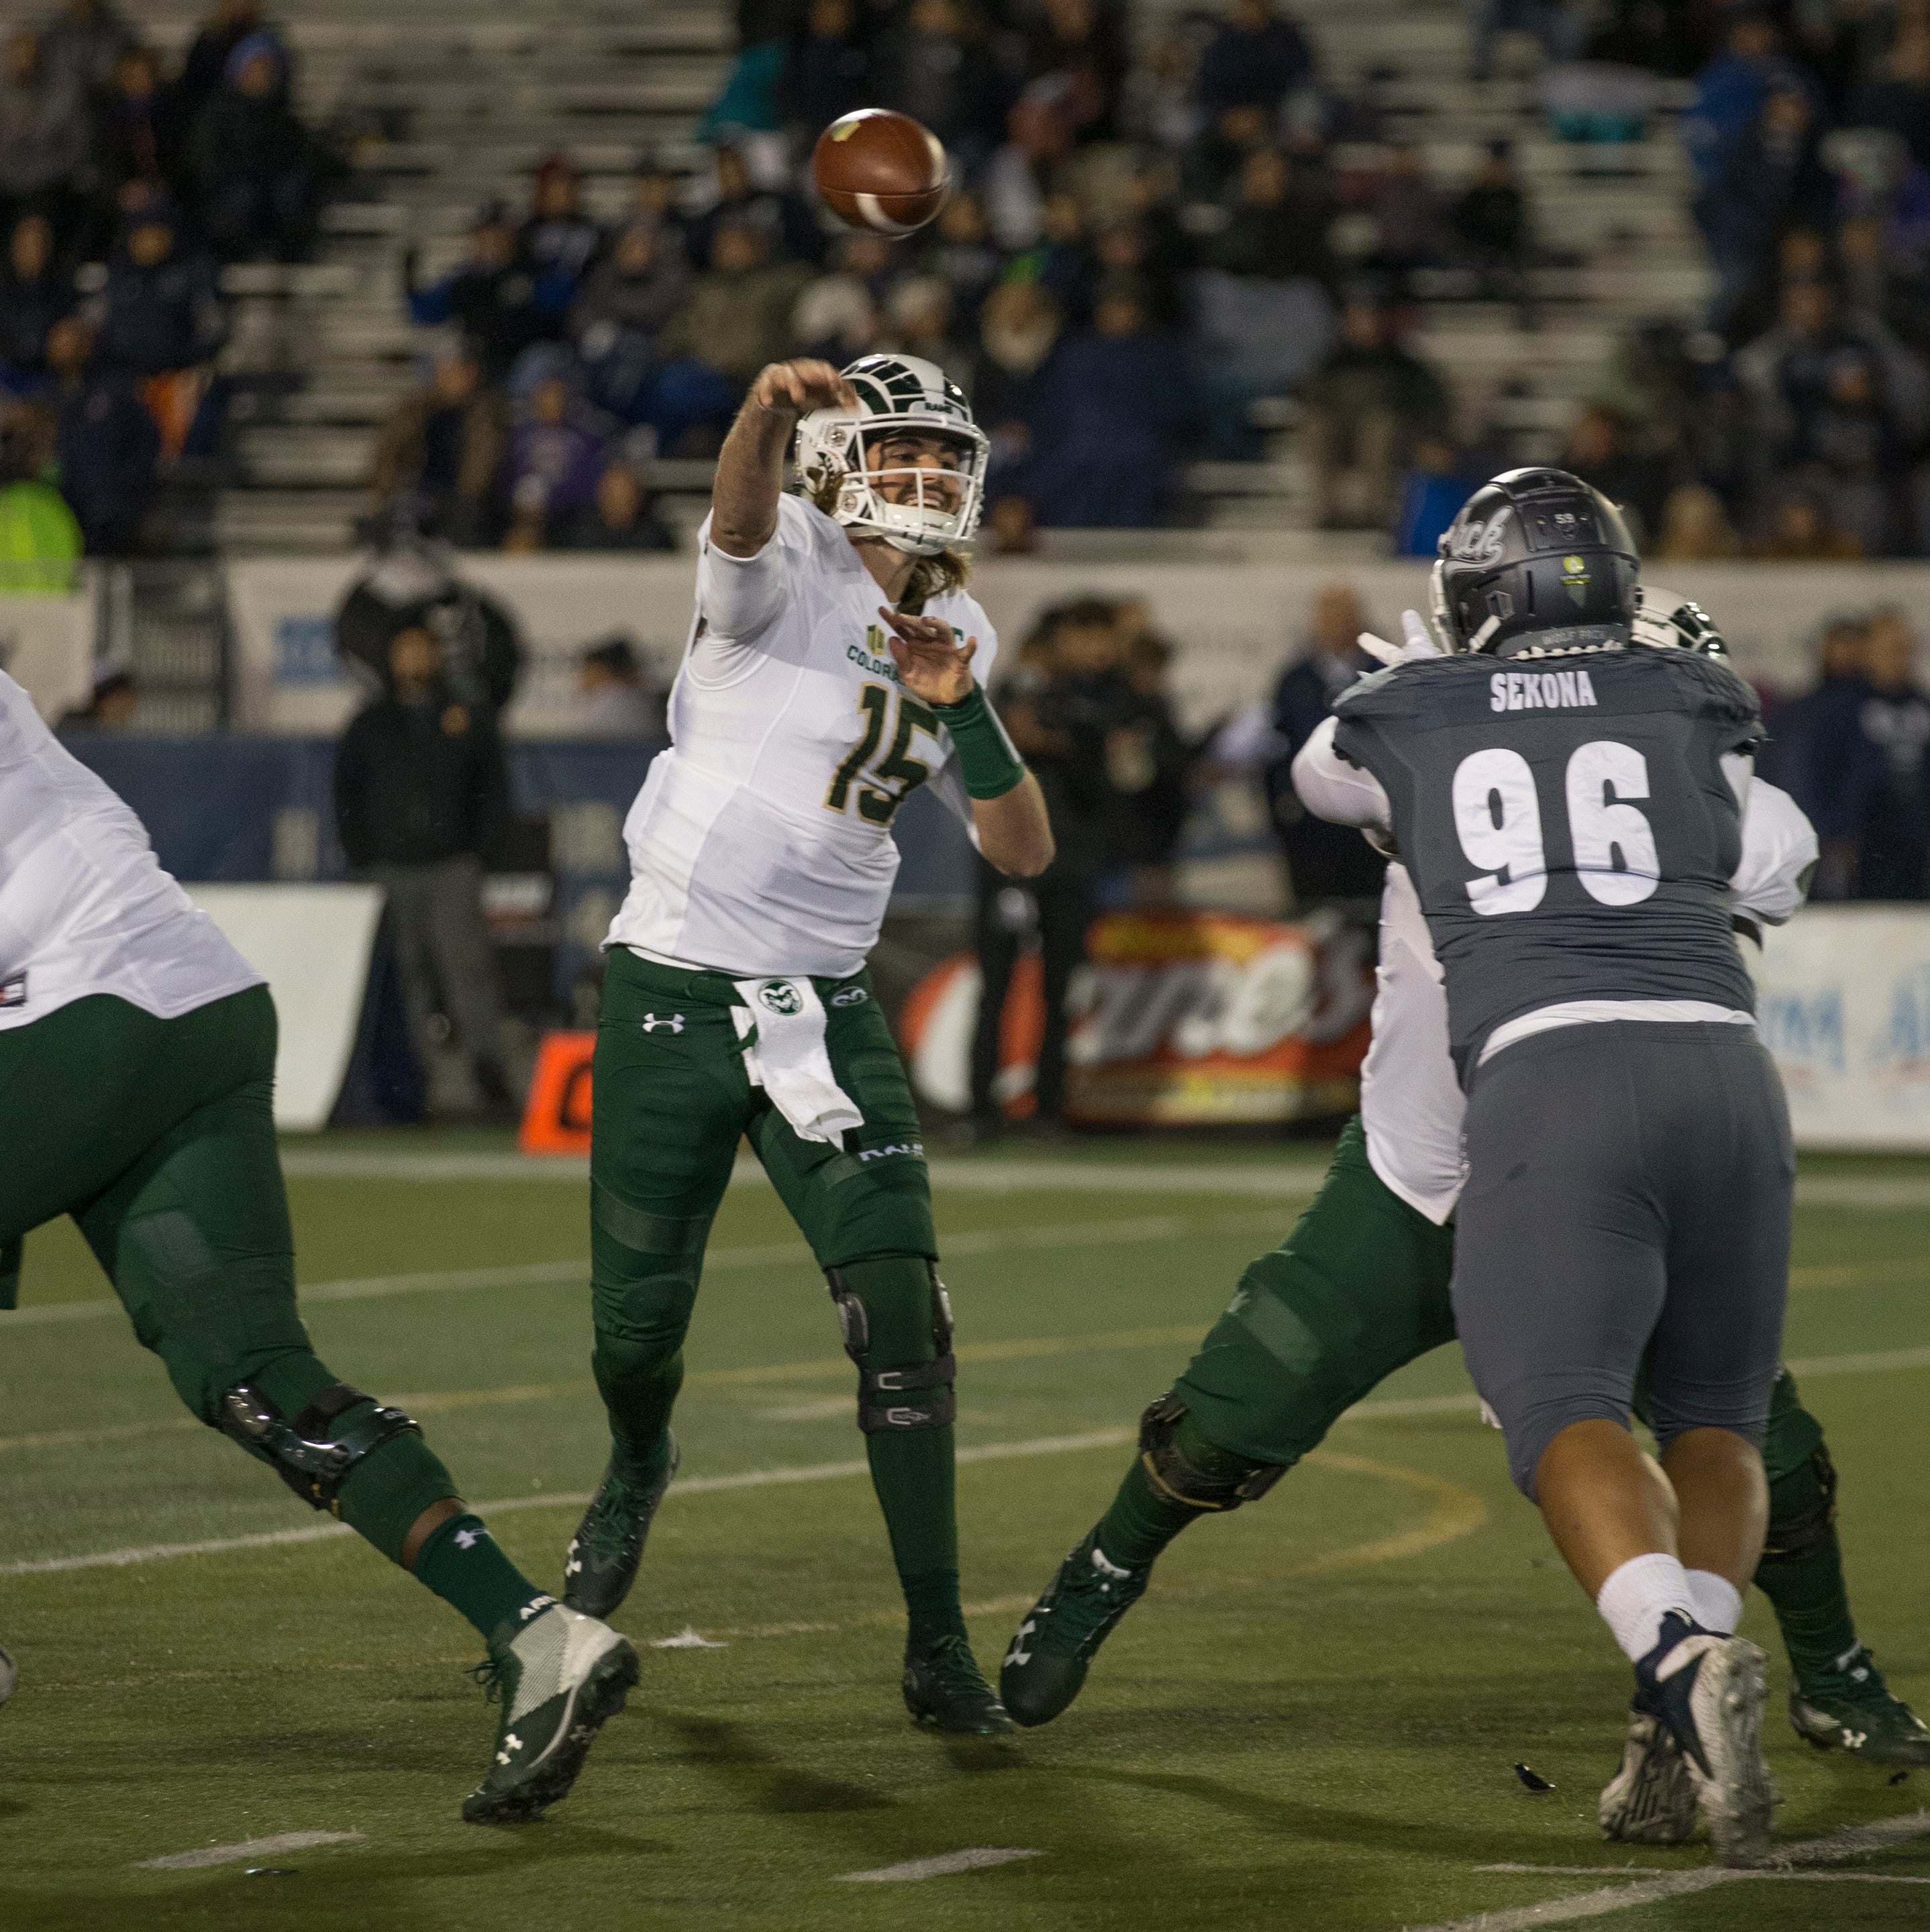 3 thoughts as Colorado State University football team is embarrassed by Nevada